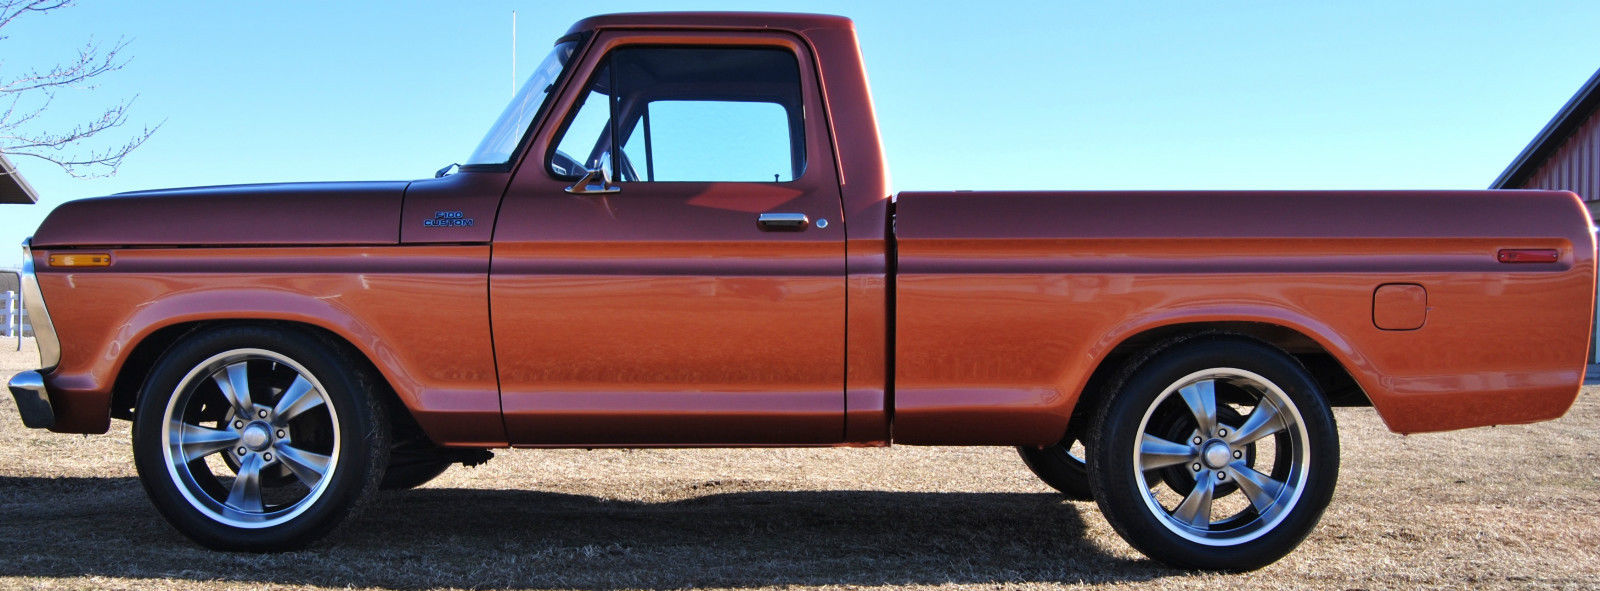 1977 f100 custom new paint lowered rocket racing wheels 351 modified 20s classic ford f 100